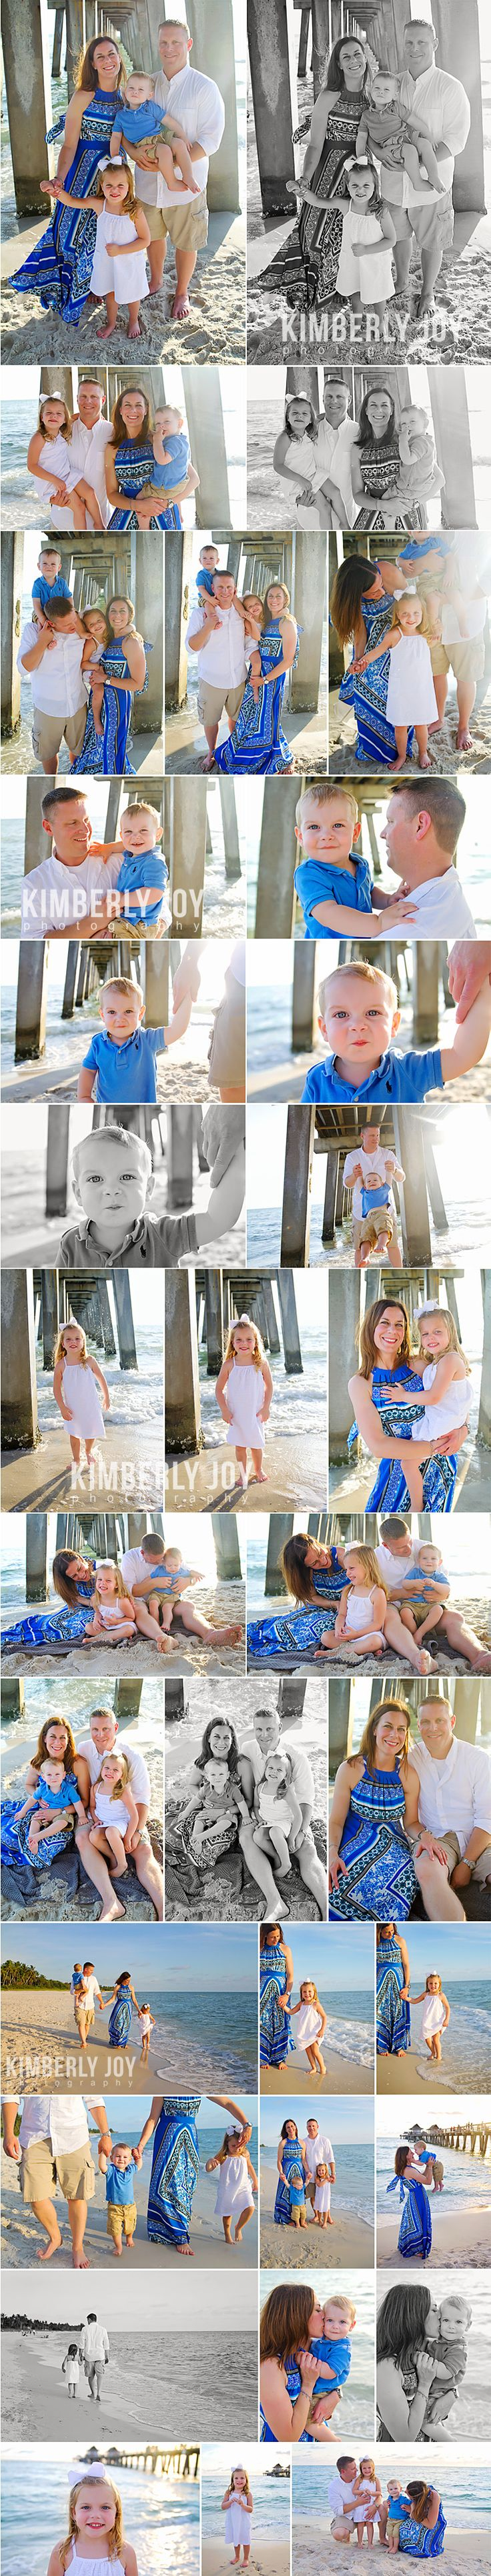 Kimberly-Alegria-Photography-Beach-Família-Session-Kids-Children-fotógrafo-Nápoles-Florida-Pier-BeachPhotos-Minis-MS2